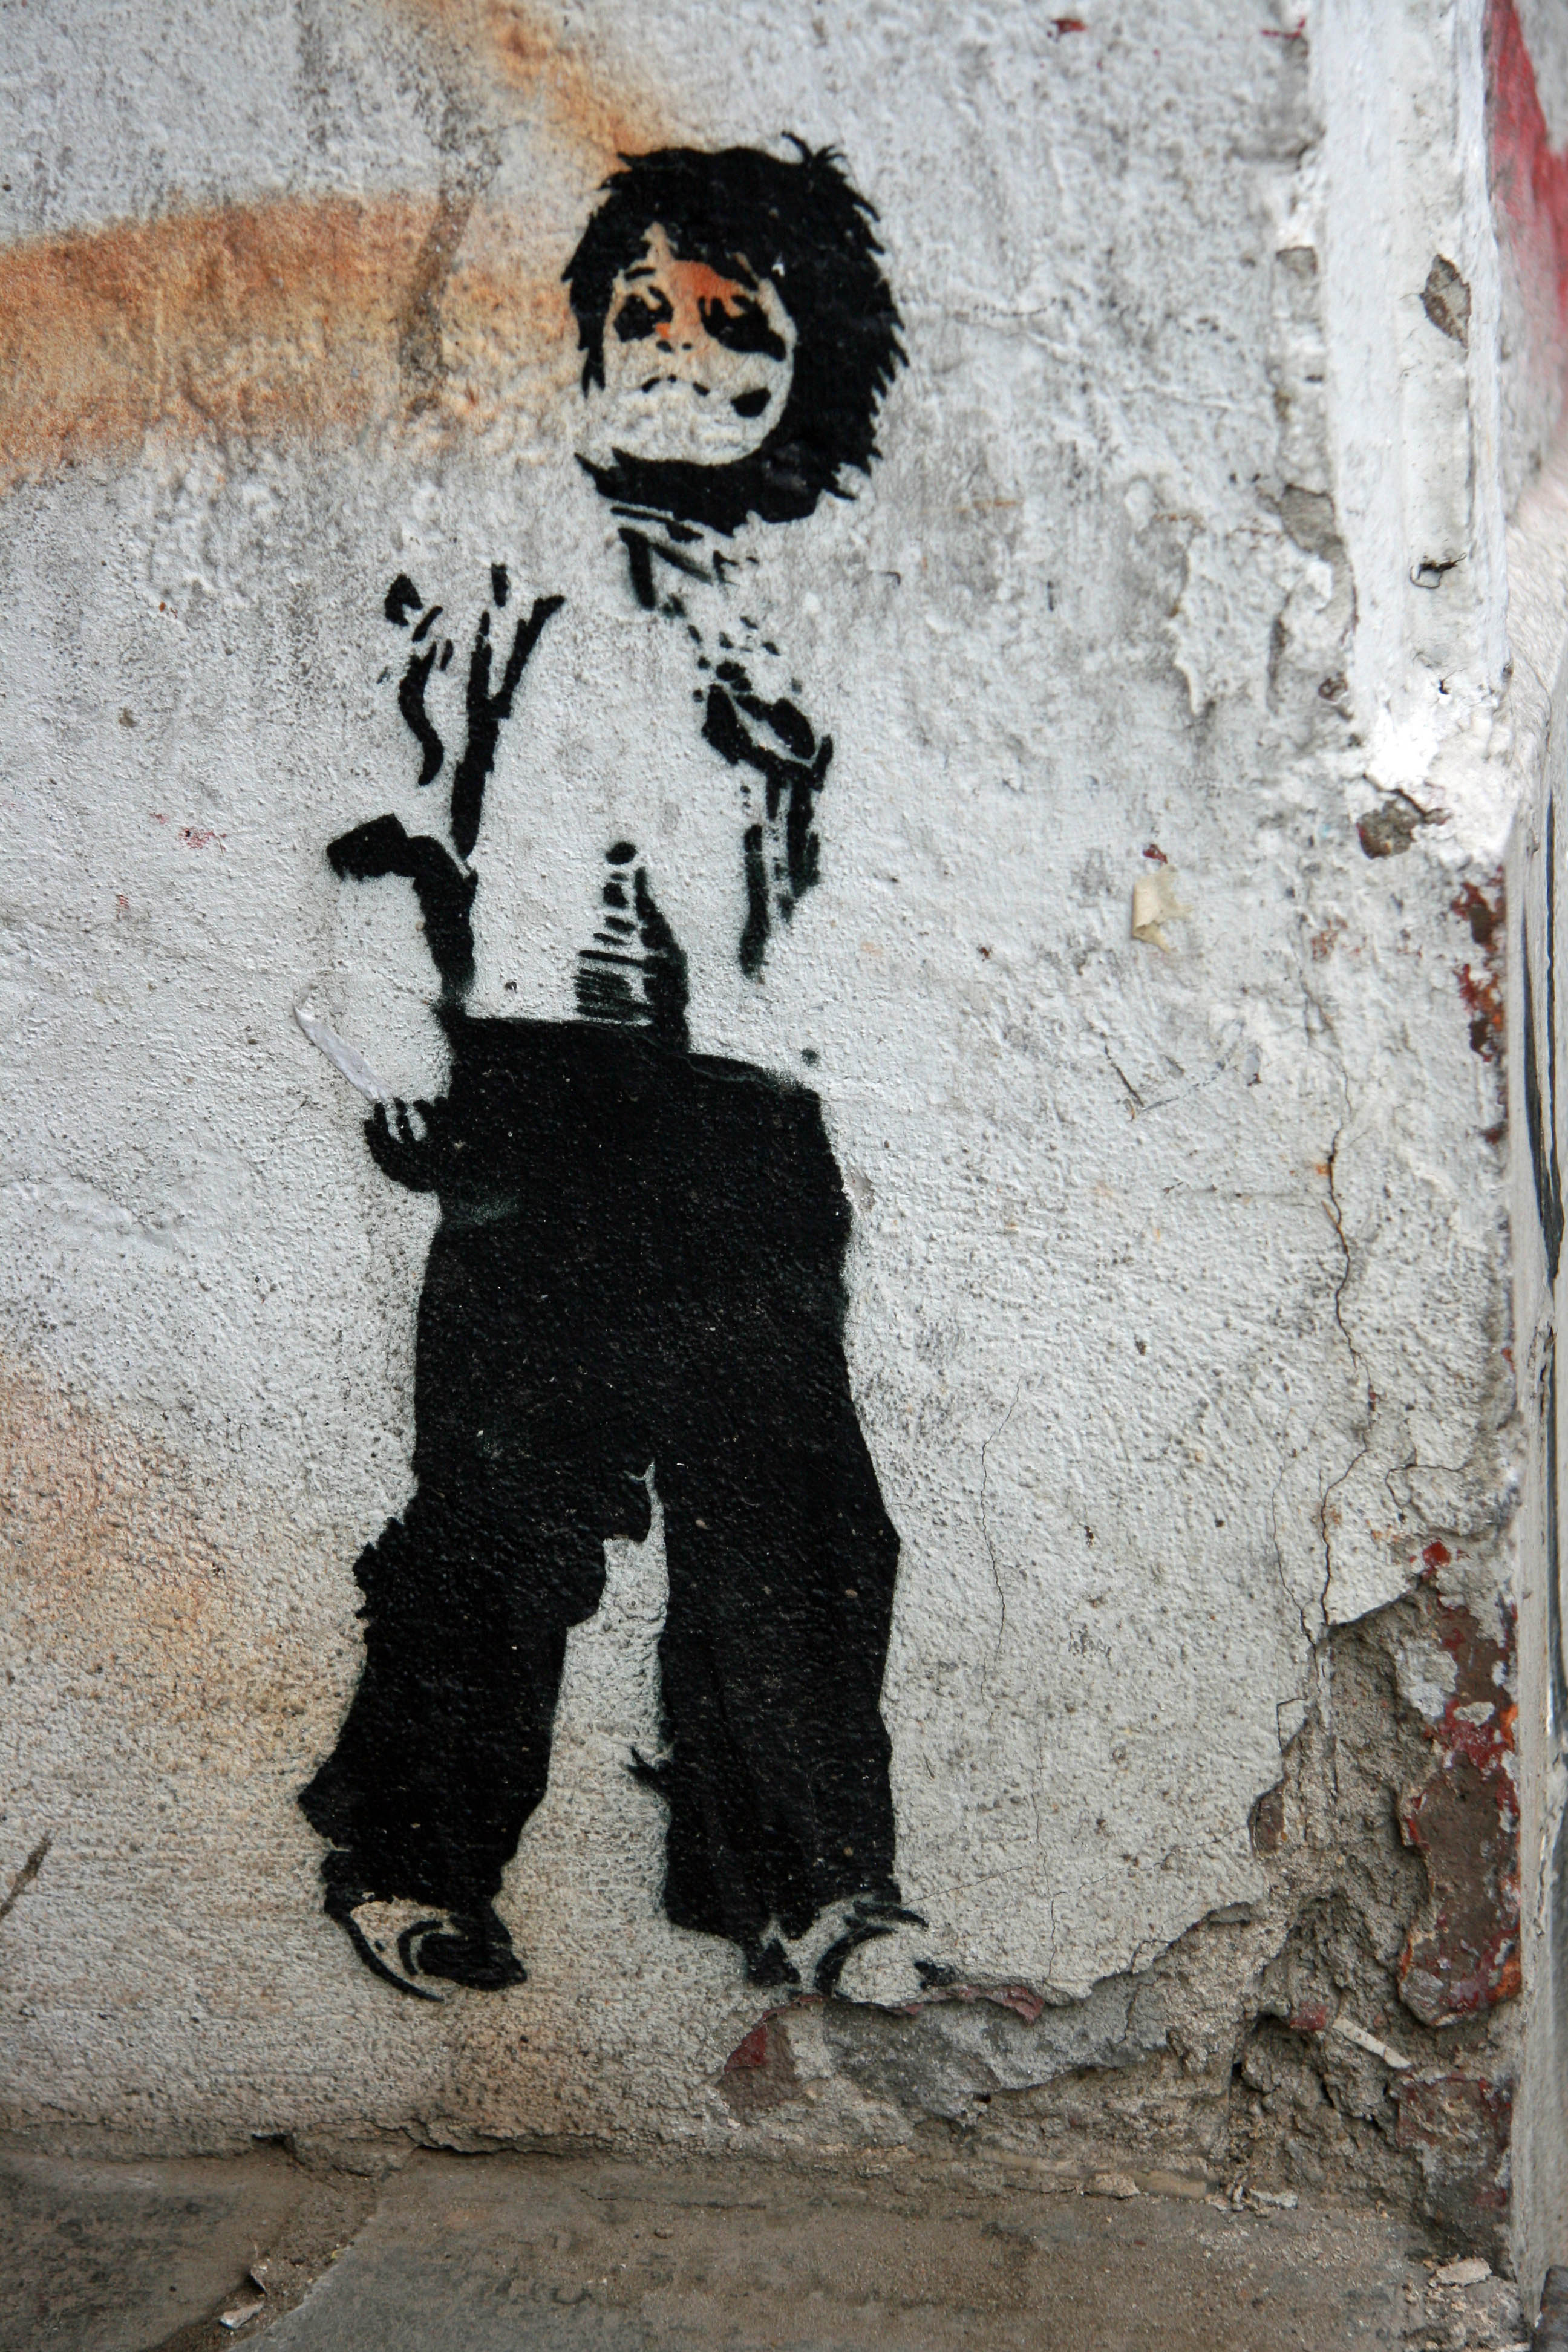 Black Eyed Boy - Street Art by ALIAS in Berlin